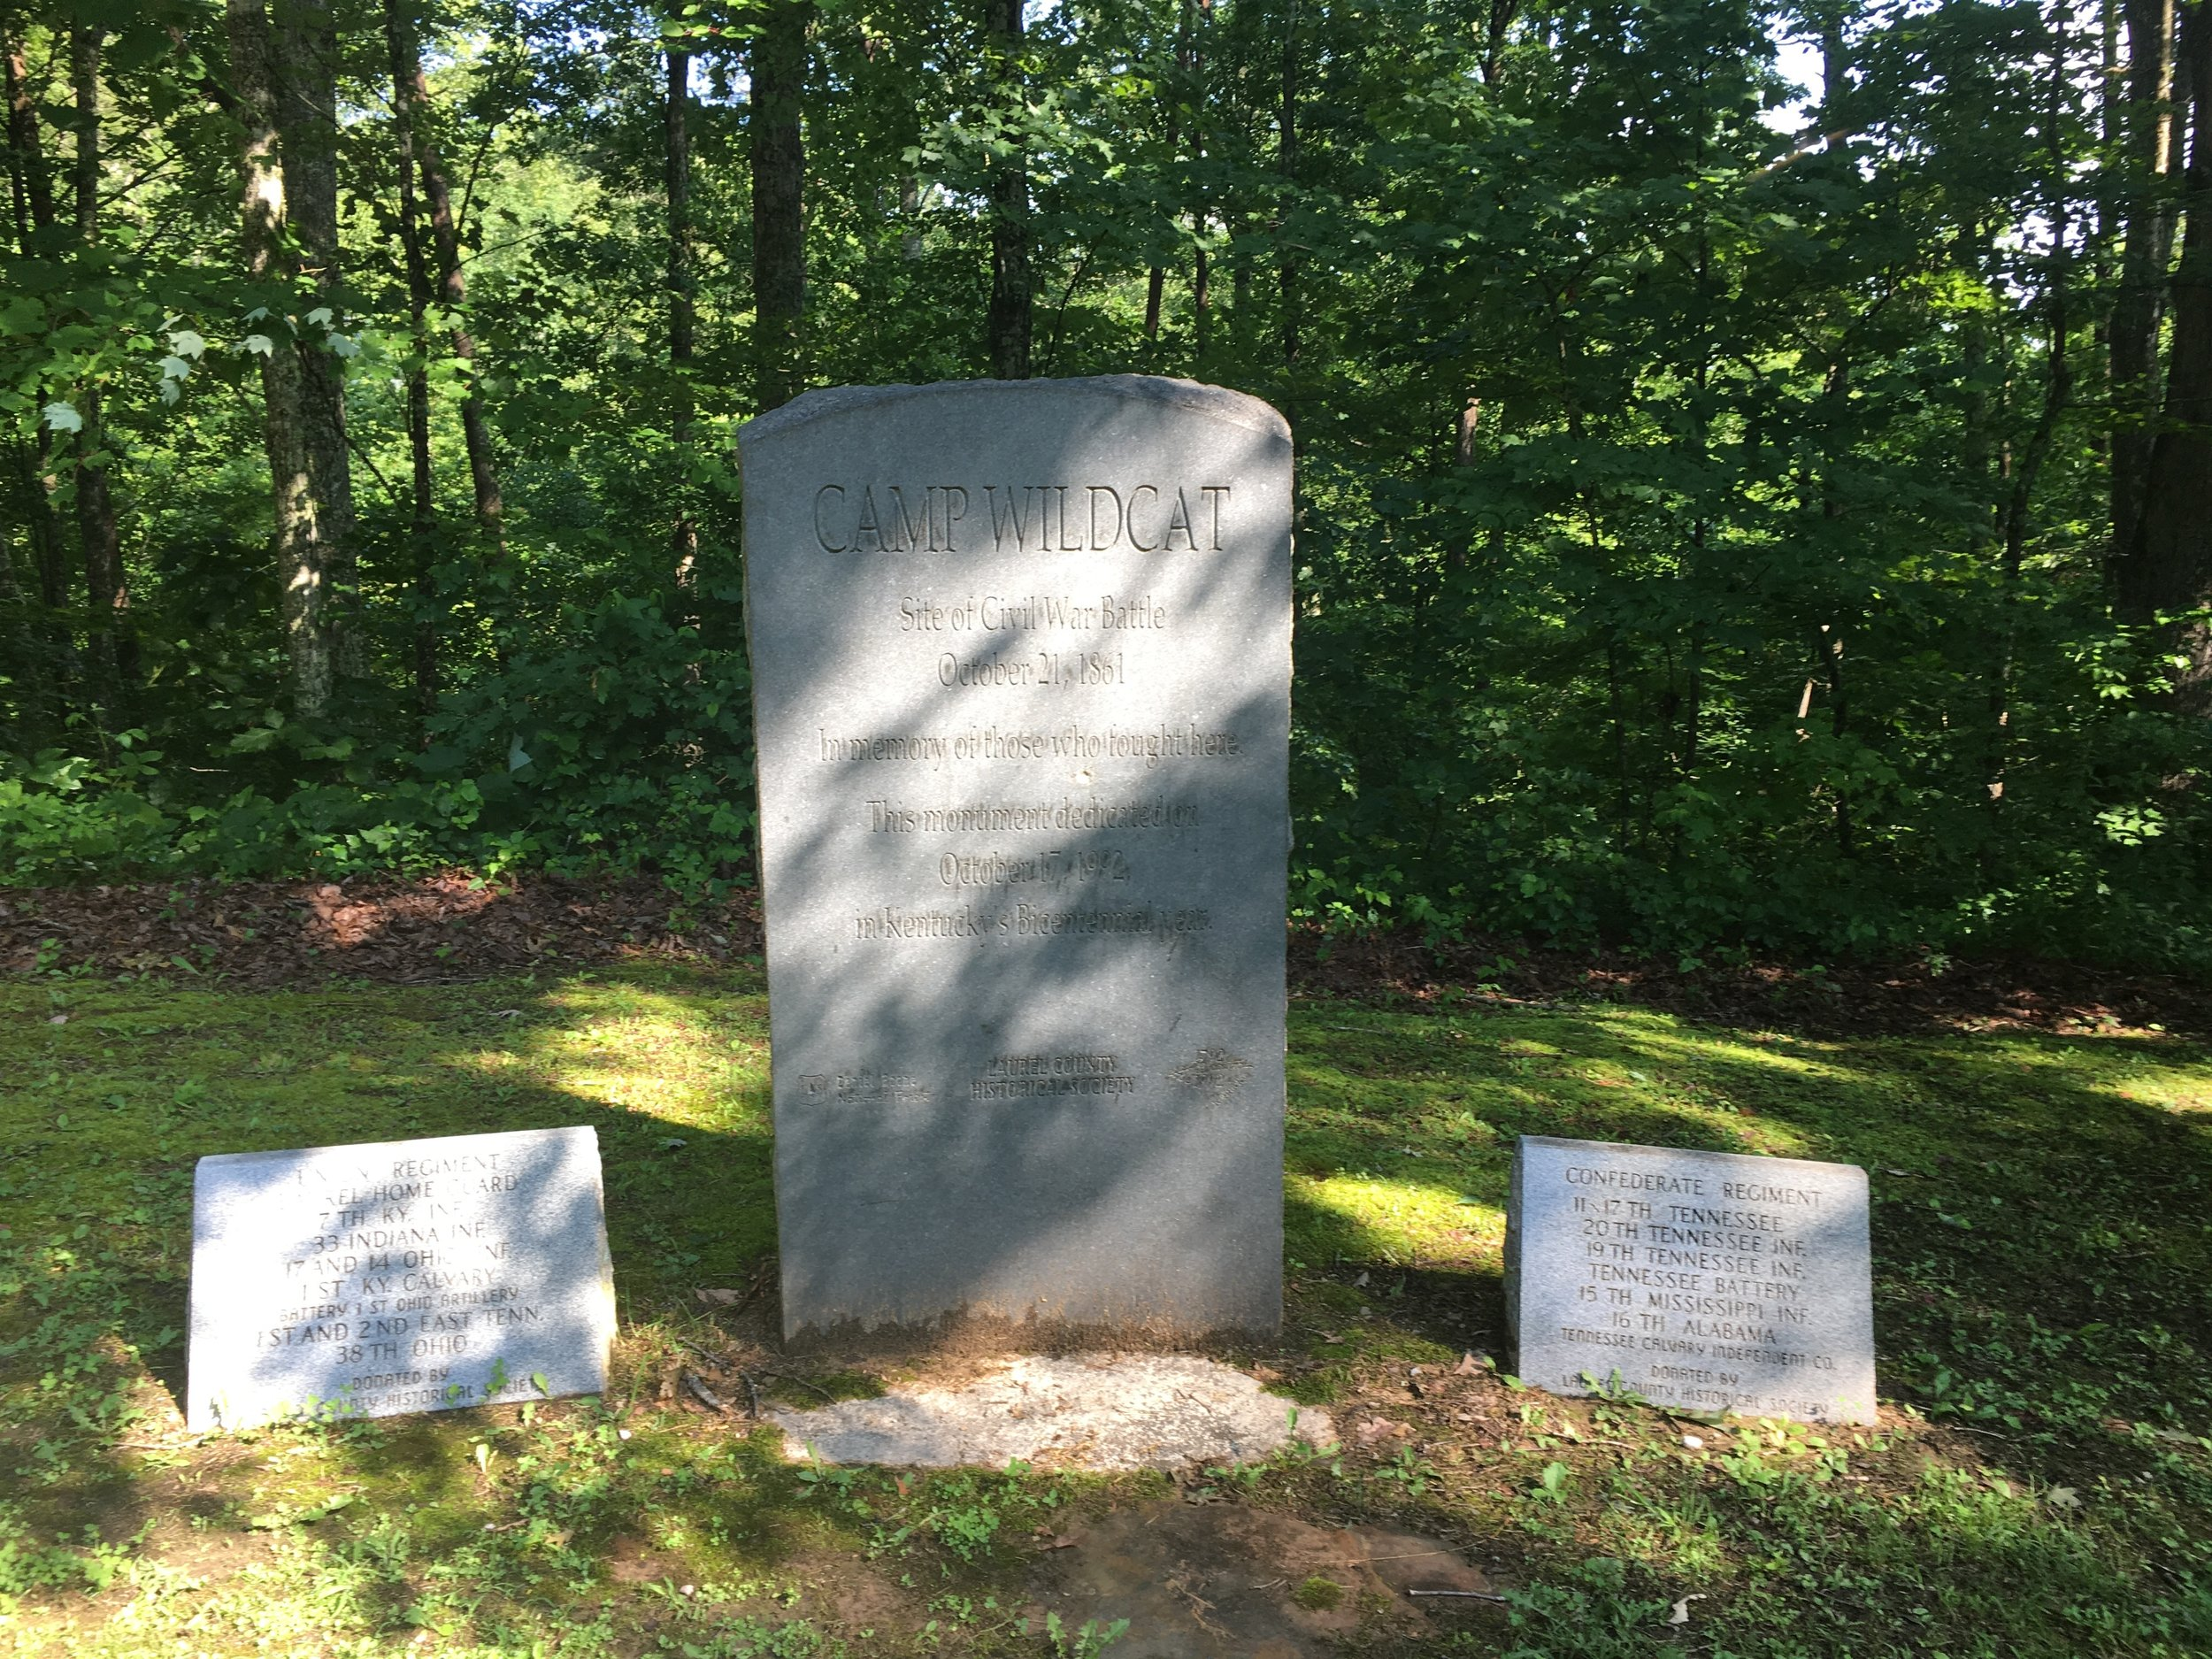 The memorial at Camp Wildcat.